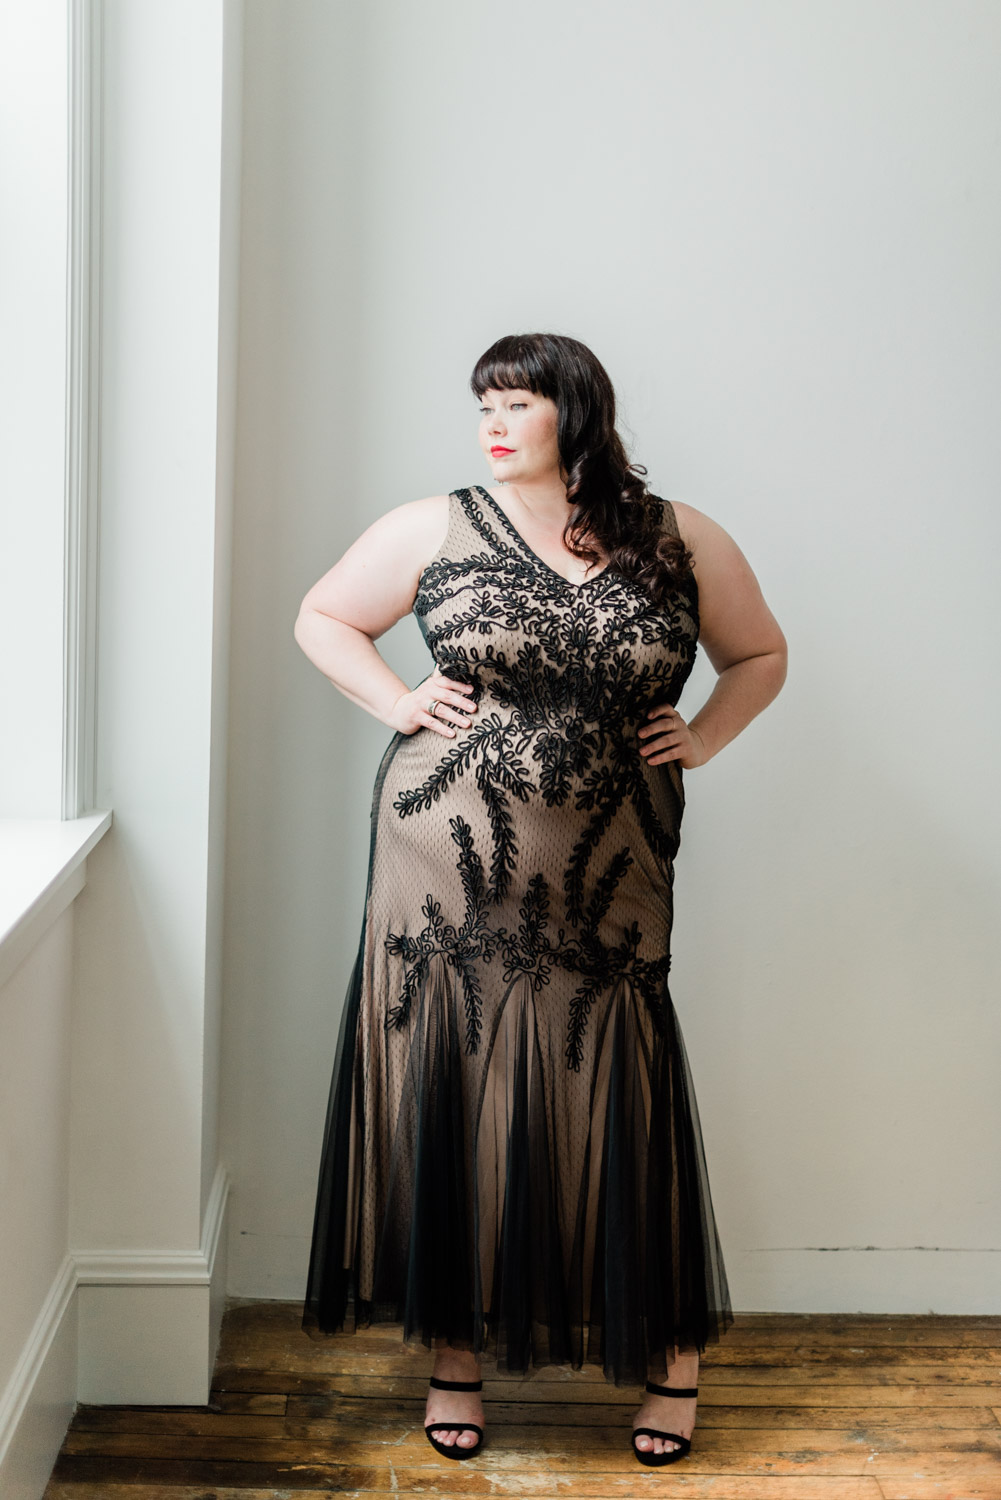 Plus Size Formal Gowns, Macy's, Style Plus Curves, Amber McCulloch, Plus Size Model, Plus Size Blogger, Betsy & Adam